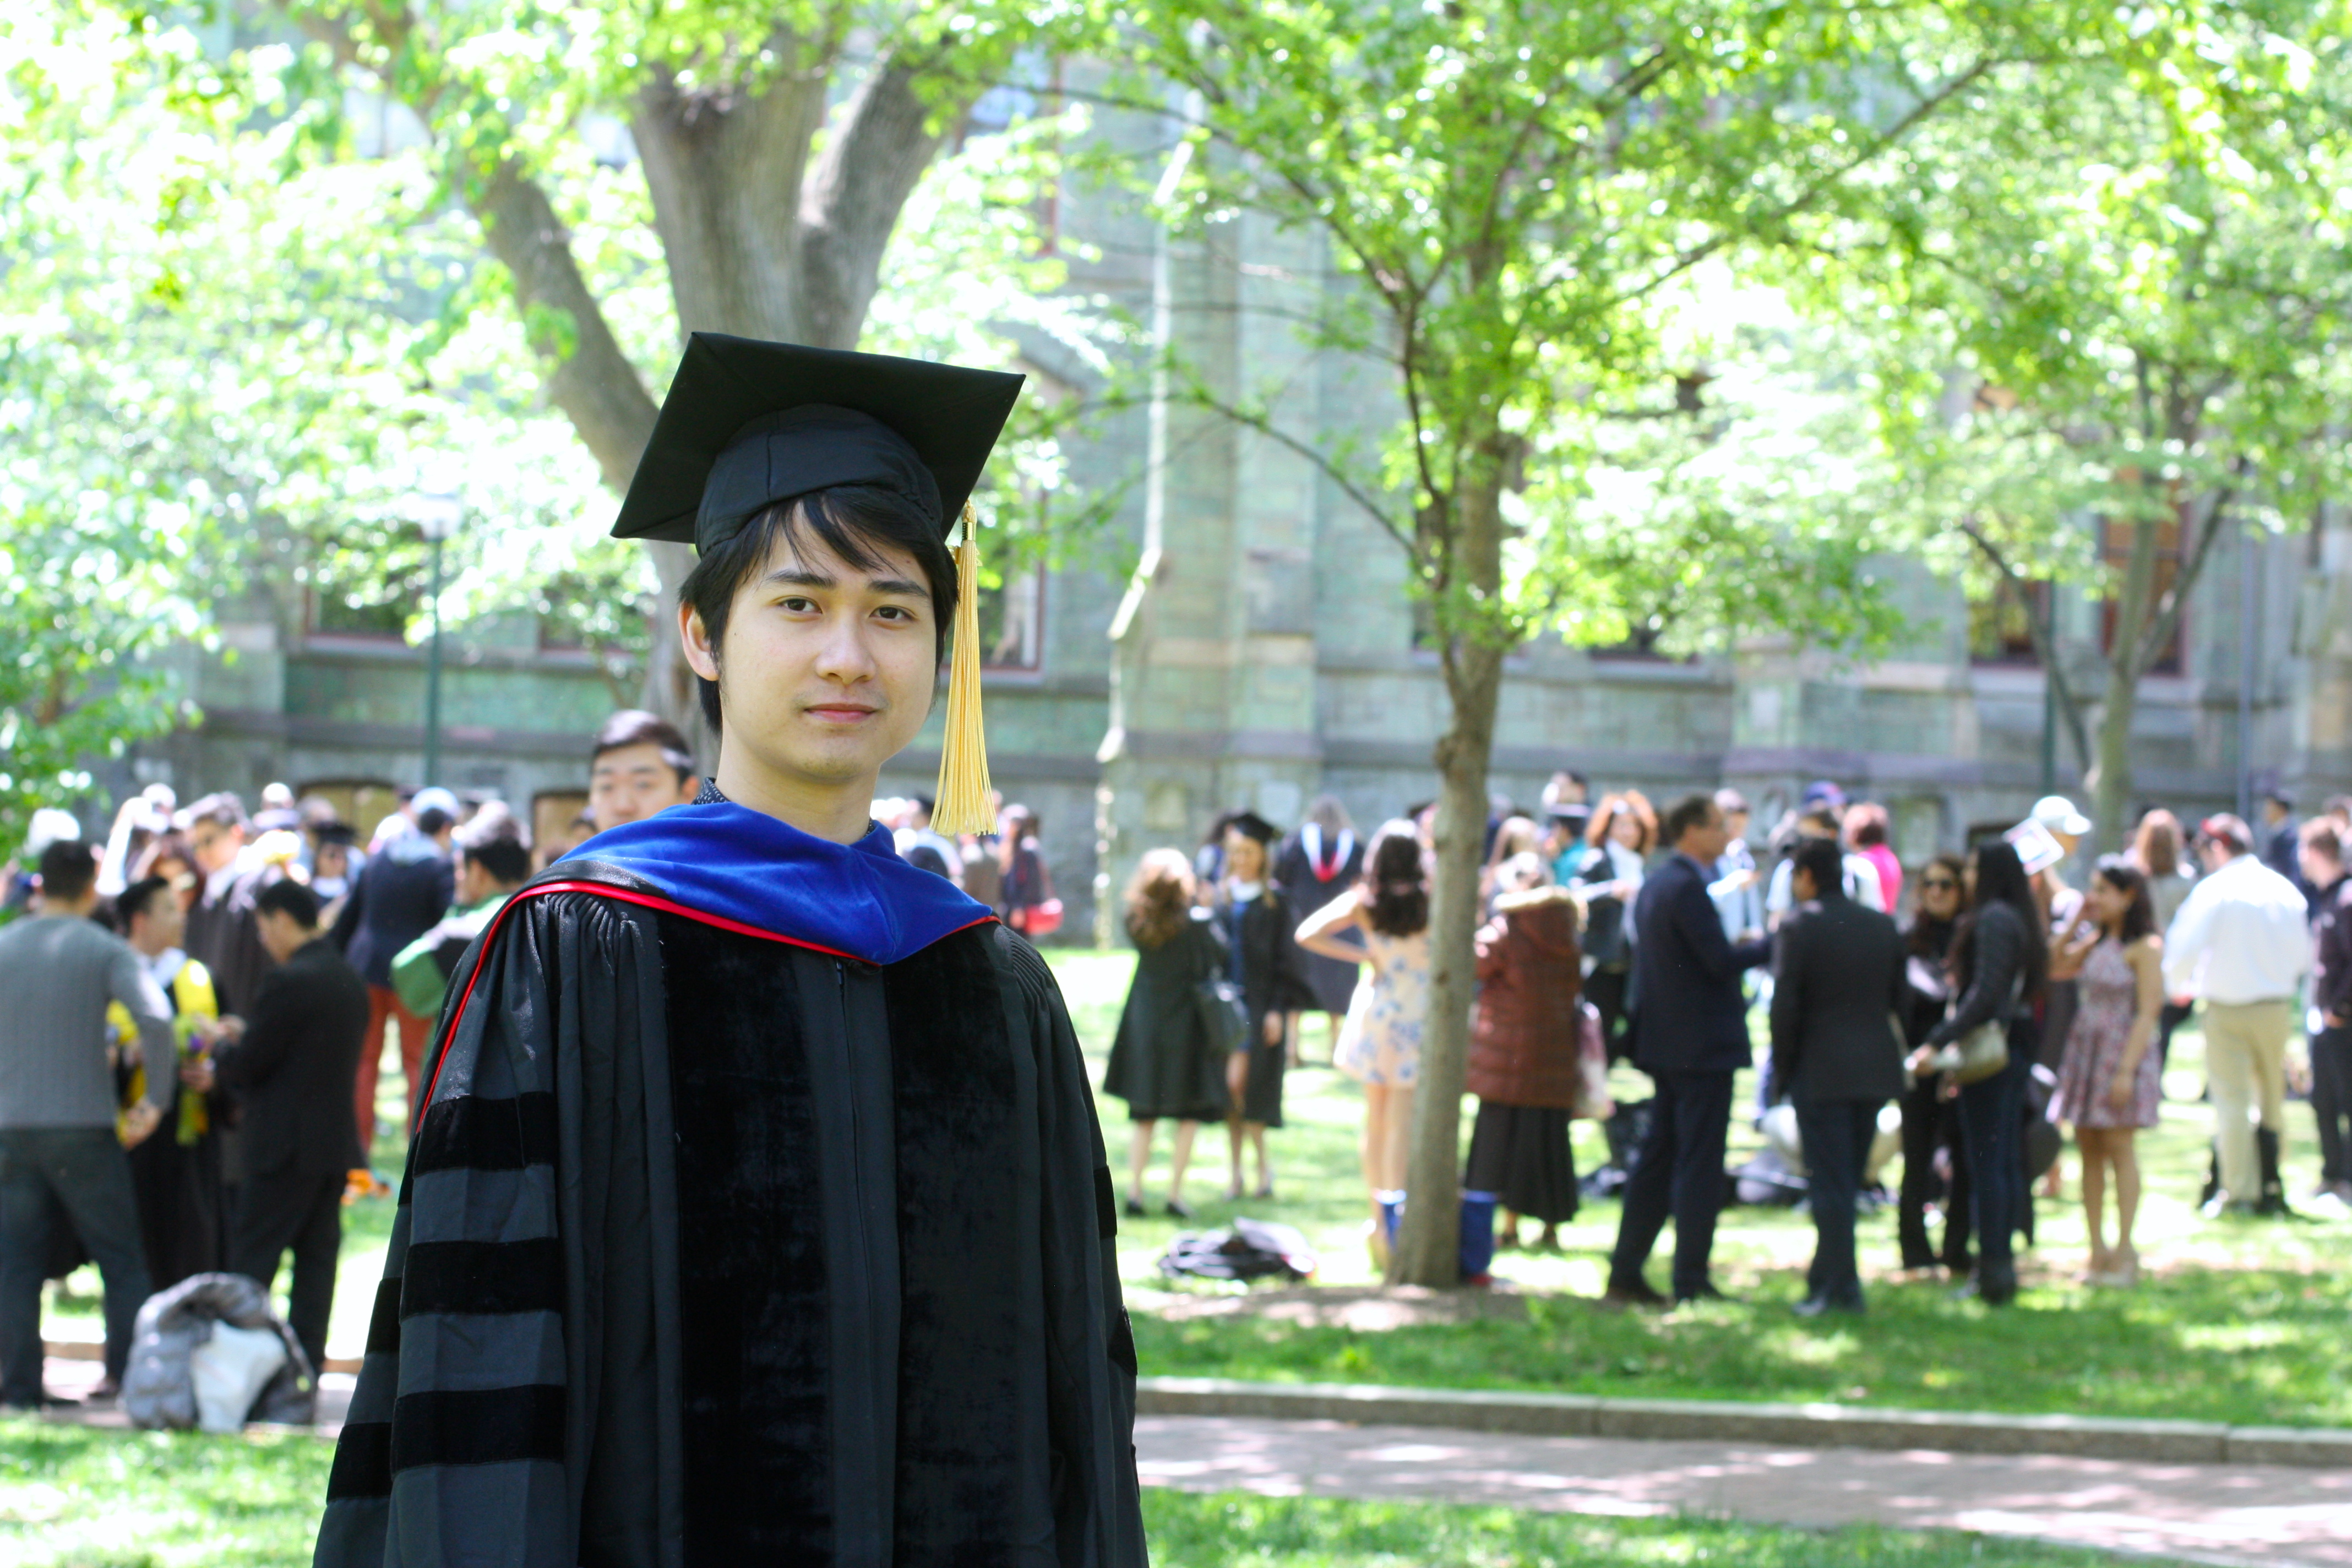 phD Graduation at Penn